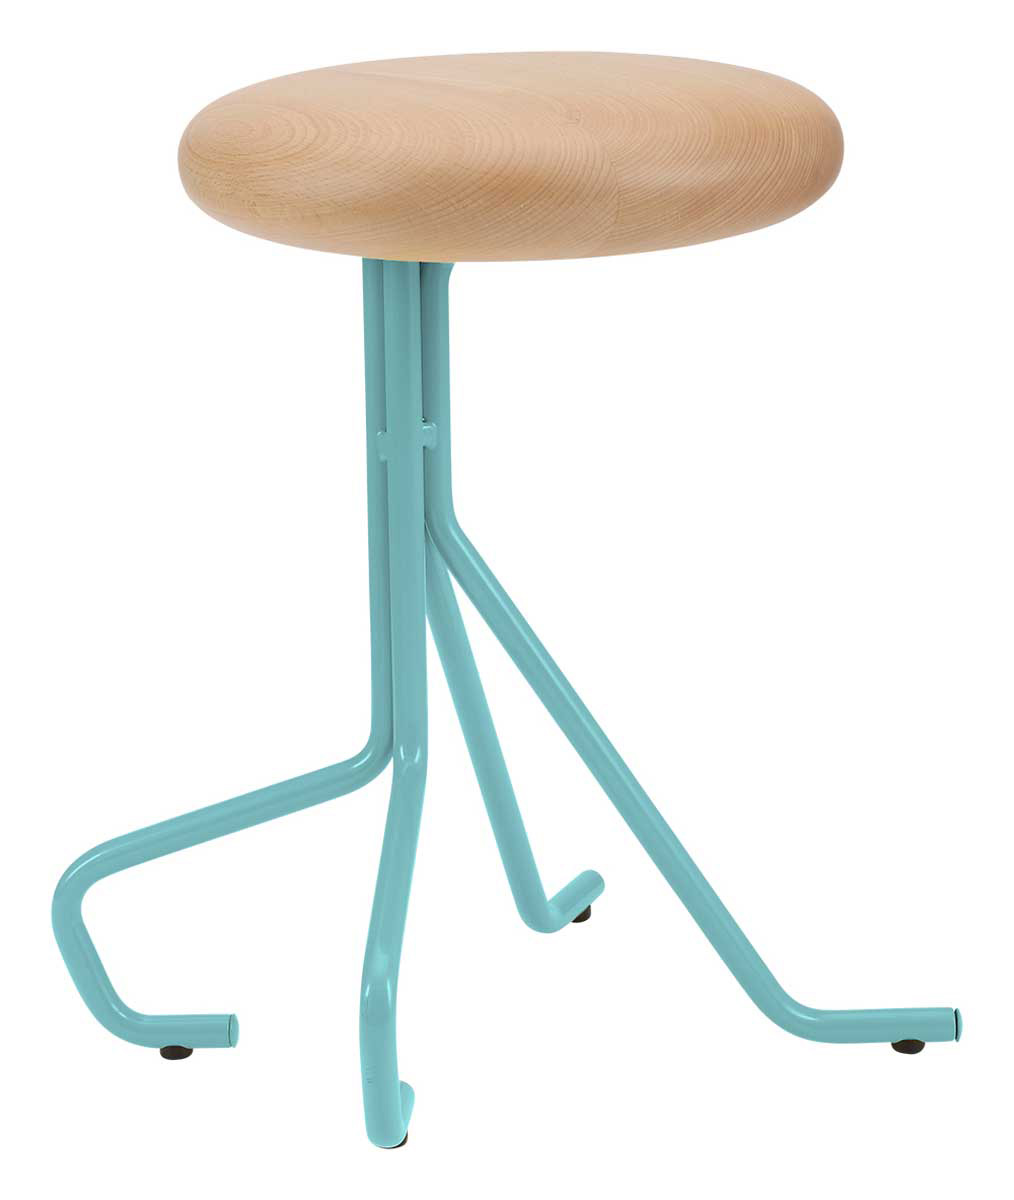 Companion Stools By Phillip Grass WoodFurniturebiz - Companion stools phillip grass